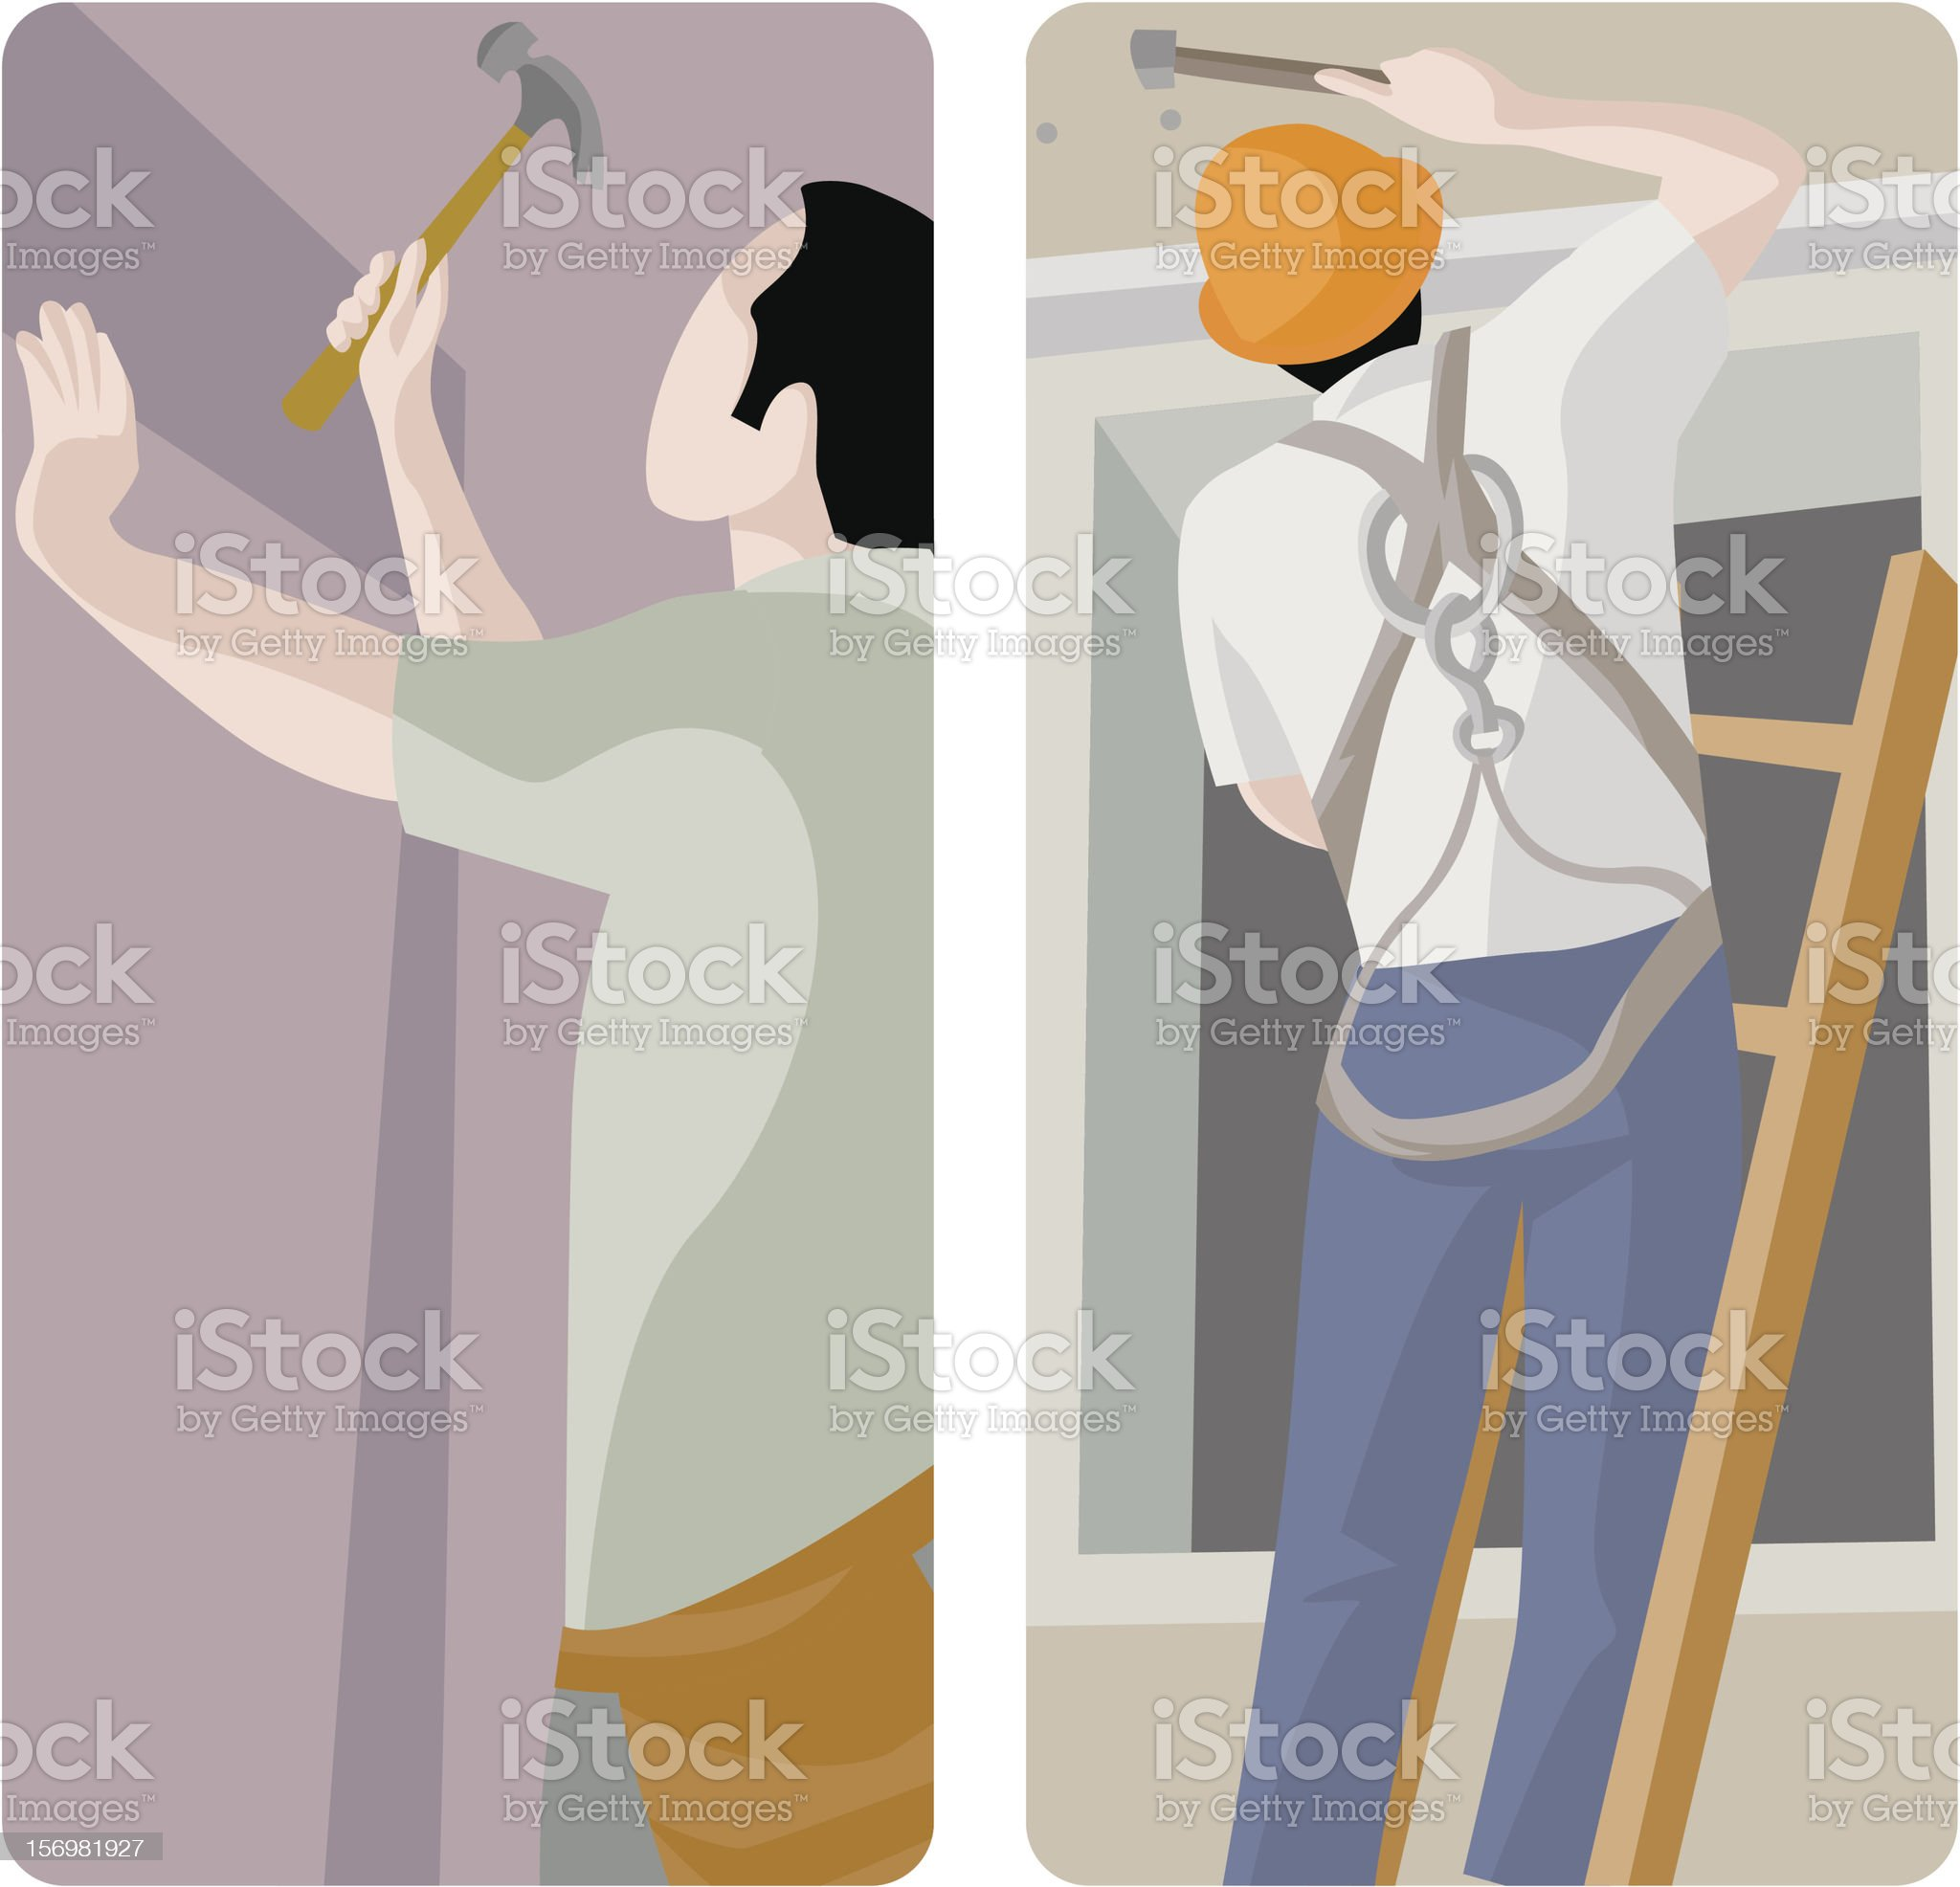 Worker Vector Illustrations Series royalty-free stock vector art